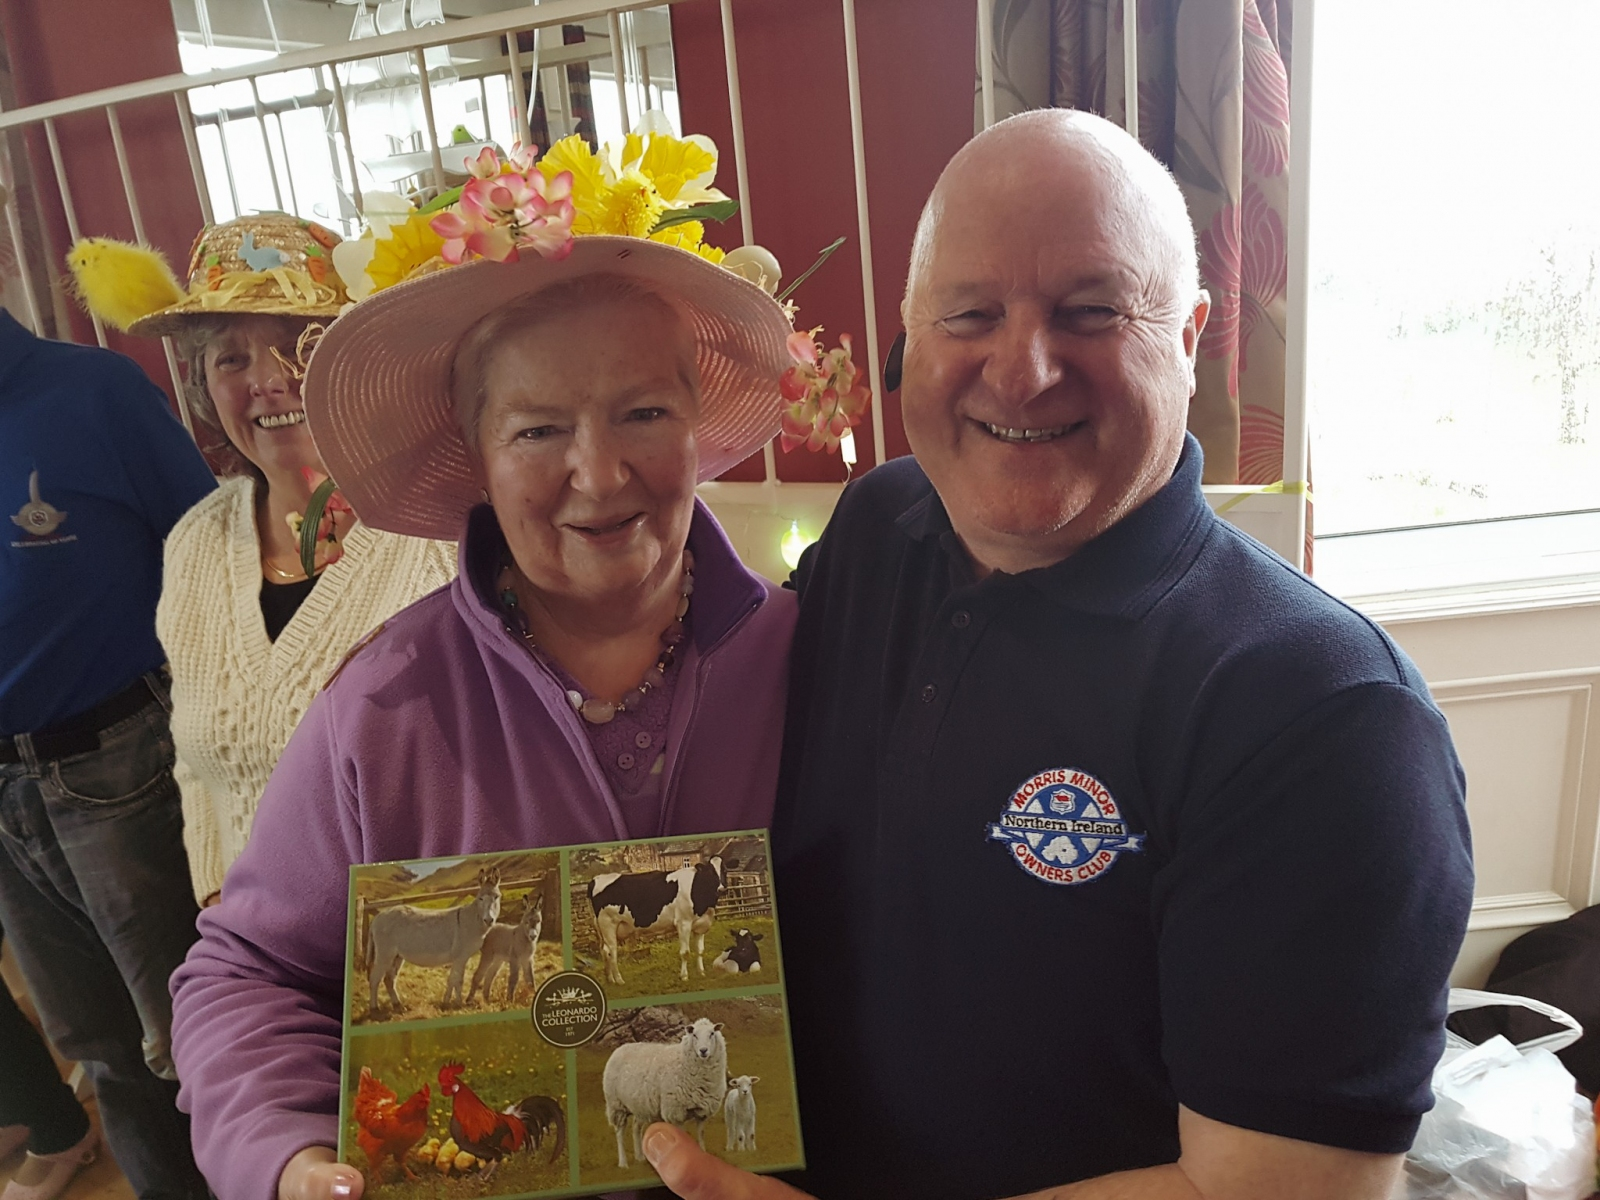 MMOC-NI-Easter-Monday-Run-2018-Beth-McNally-winner-of-the-Easter-Bonnet-competition-with-Robert-McNally